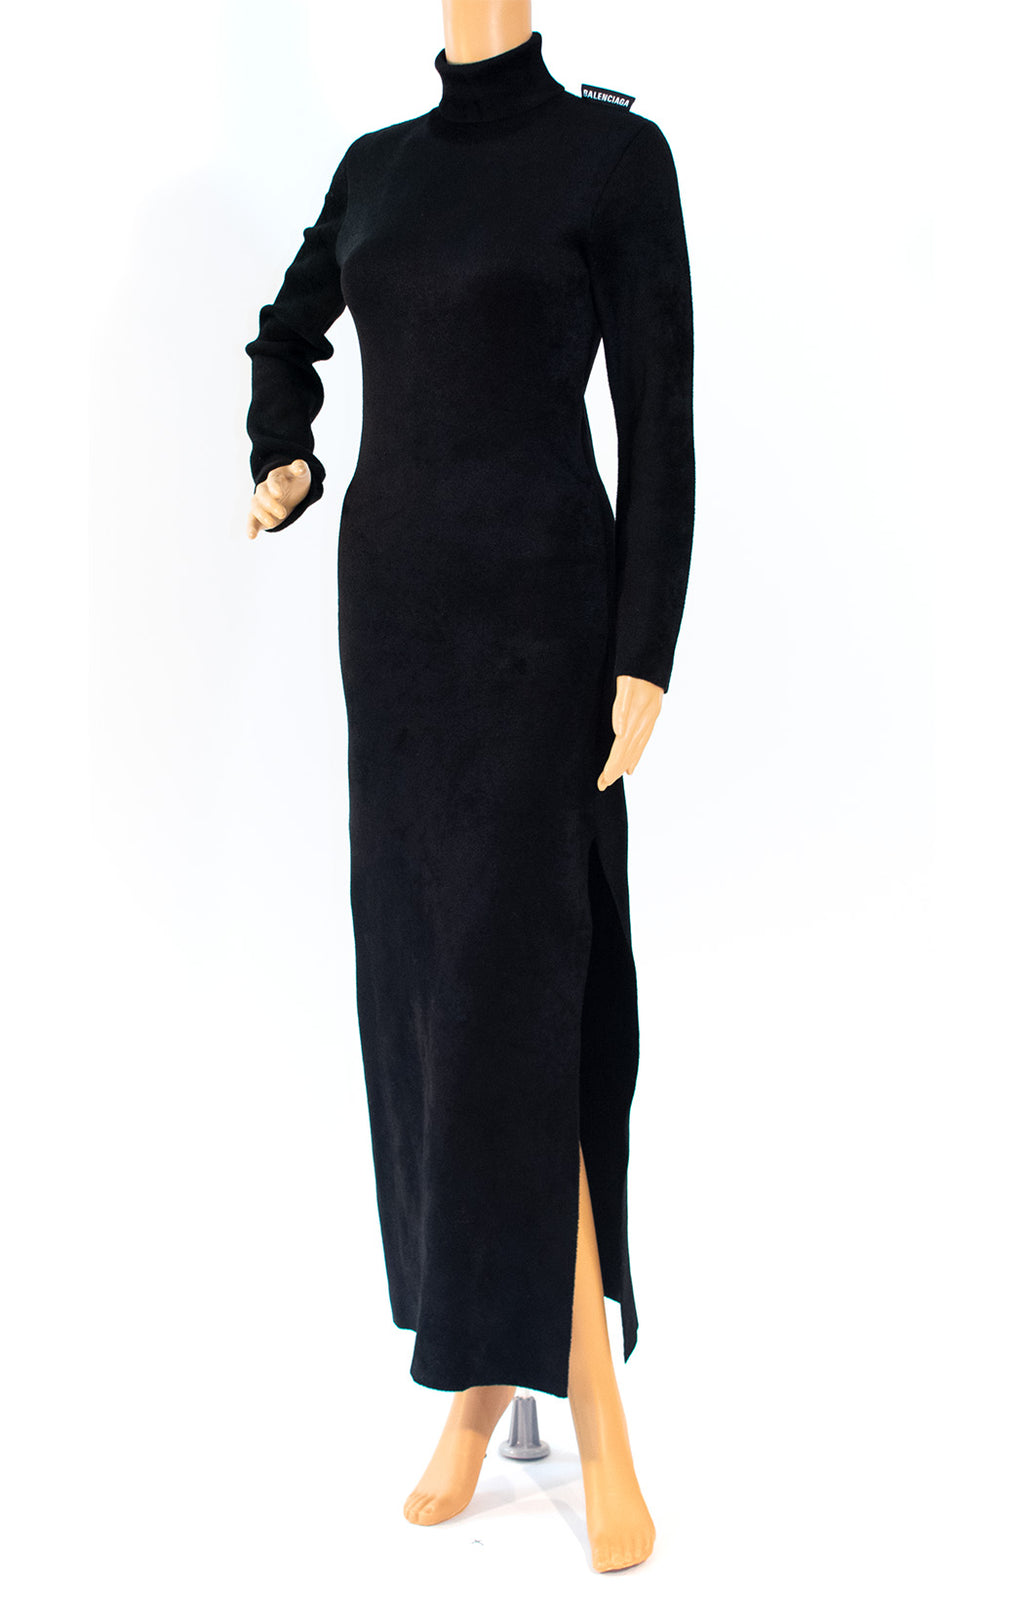 Front view of BALENCIAGA w/tags Long dress Size: Small